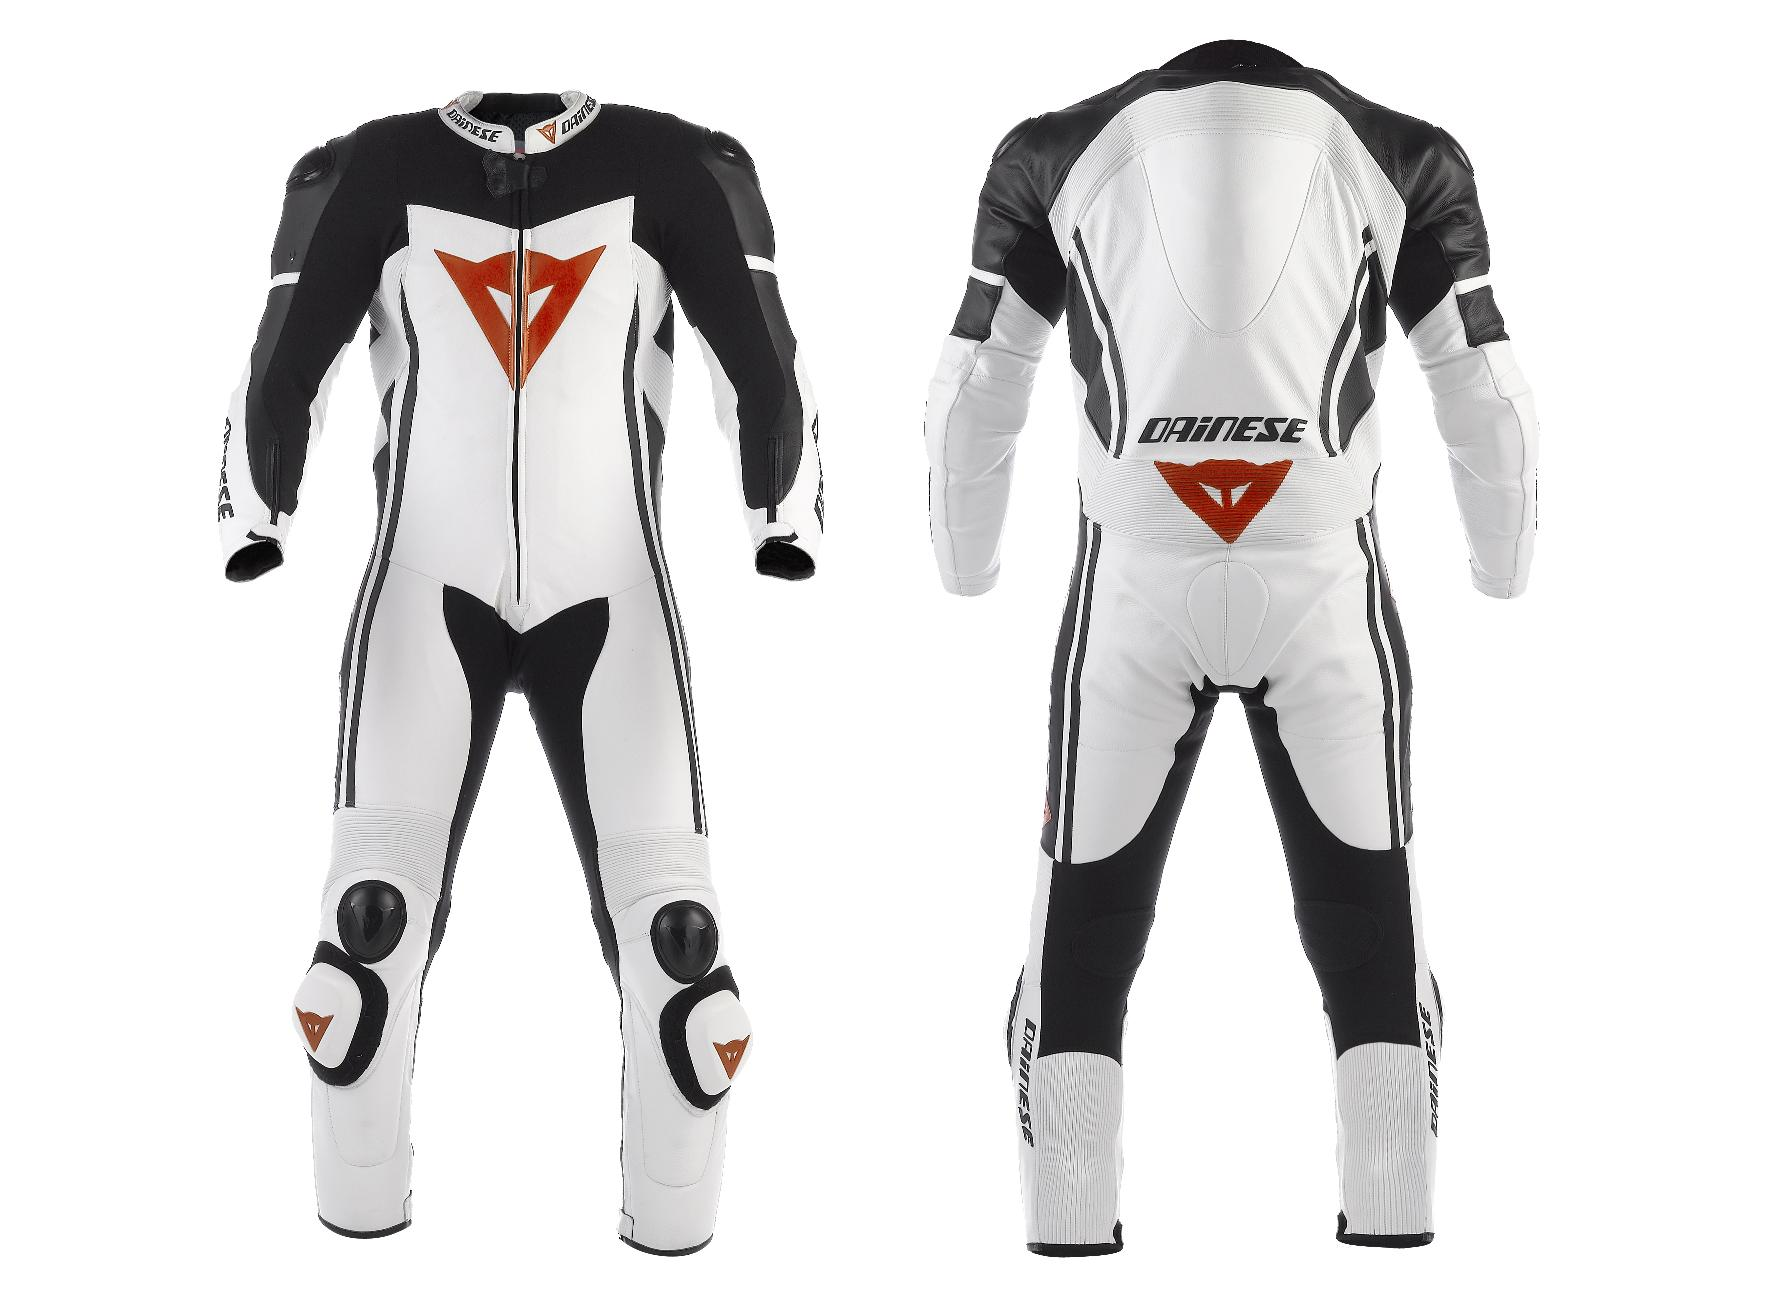 new dainese d air racing airbag suit gets you a vip. Black Bedroom Furniture Sets. Home Design Ideas